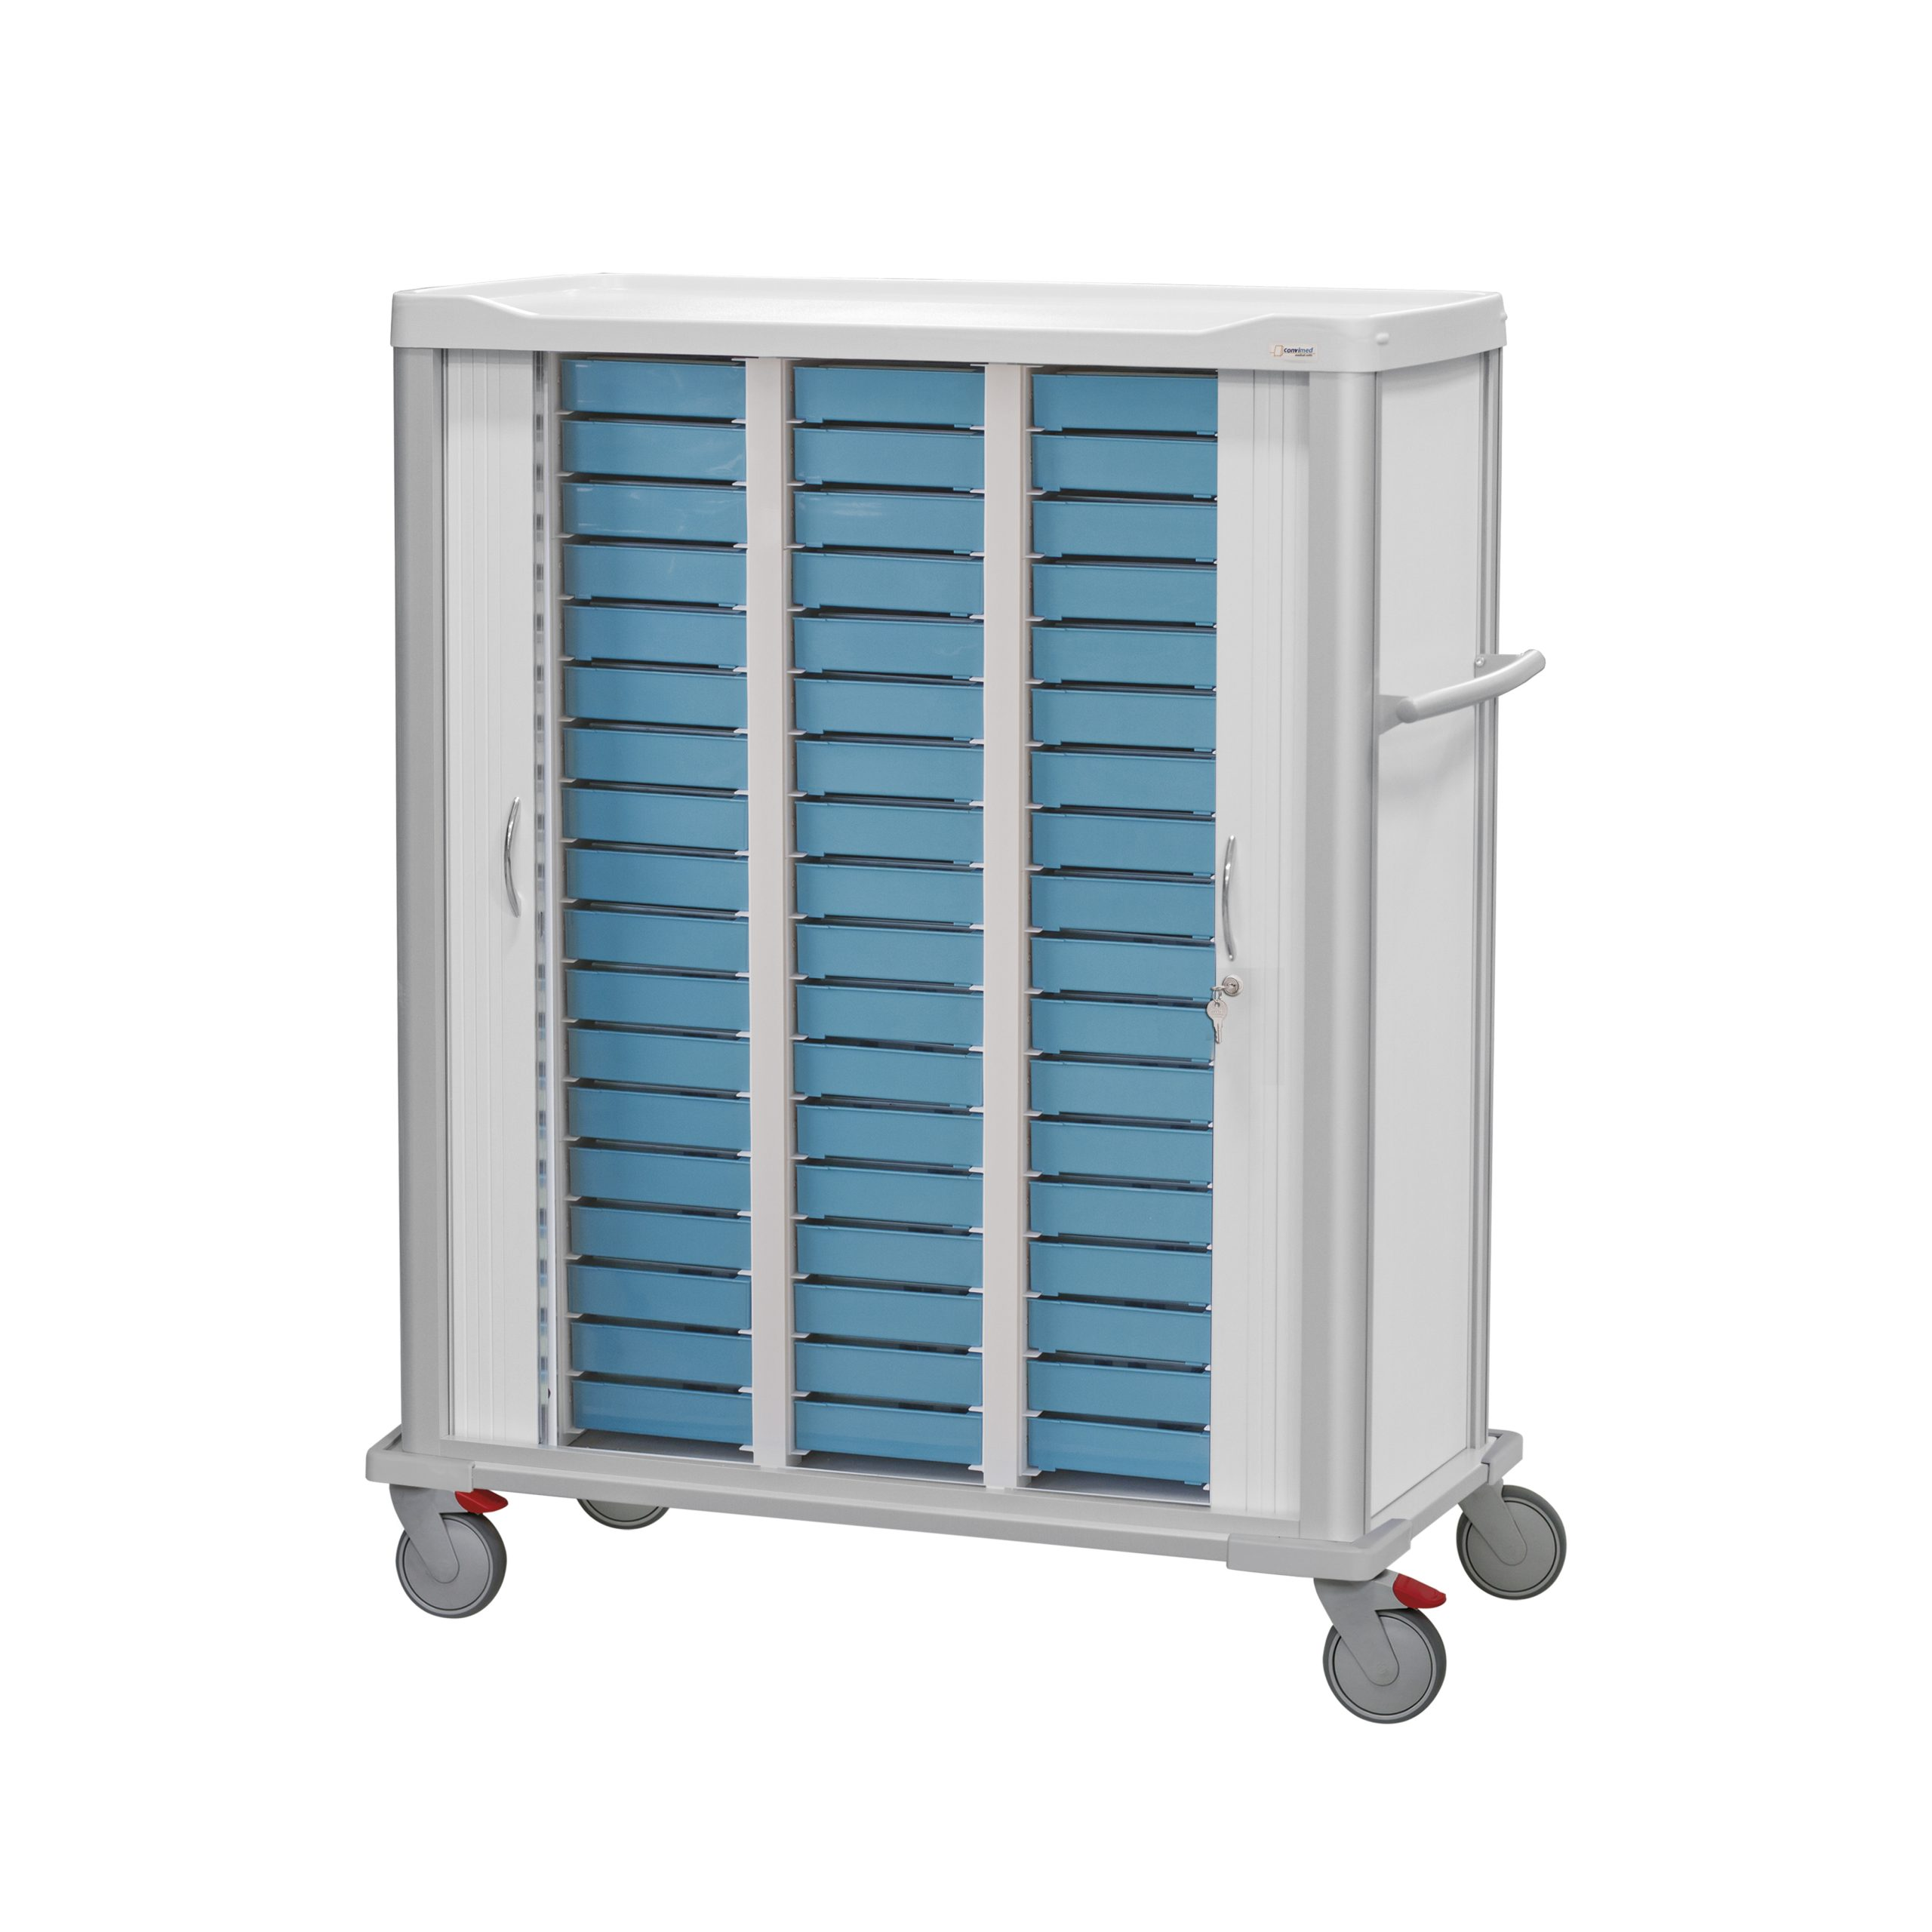 Trolley with two shutters and 54 weekly dispensers inside, placed in 3 columns of 18 blue weekly trays